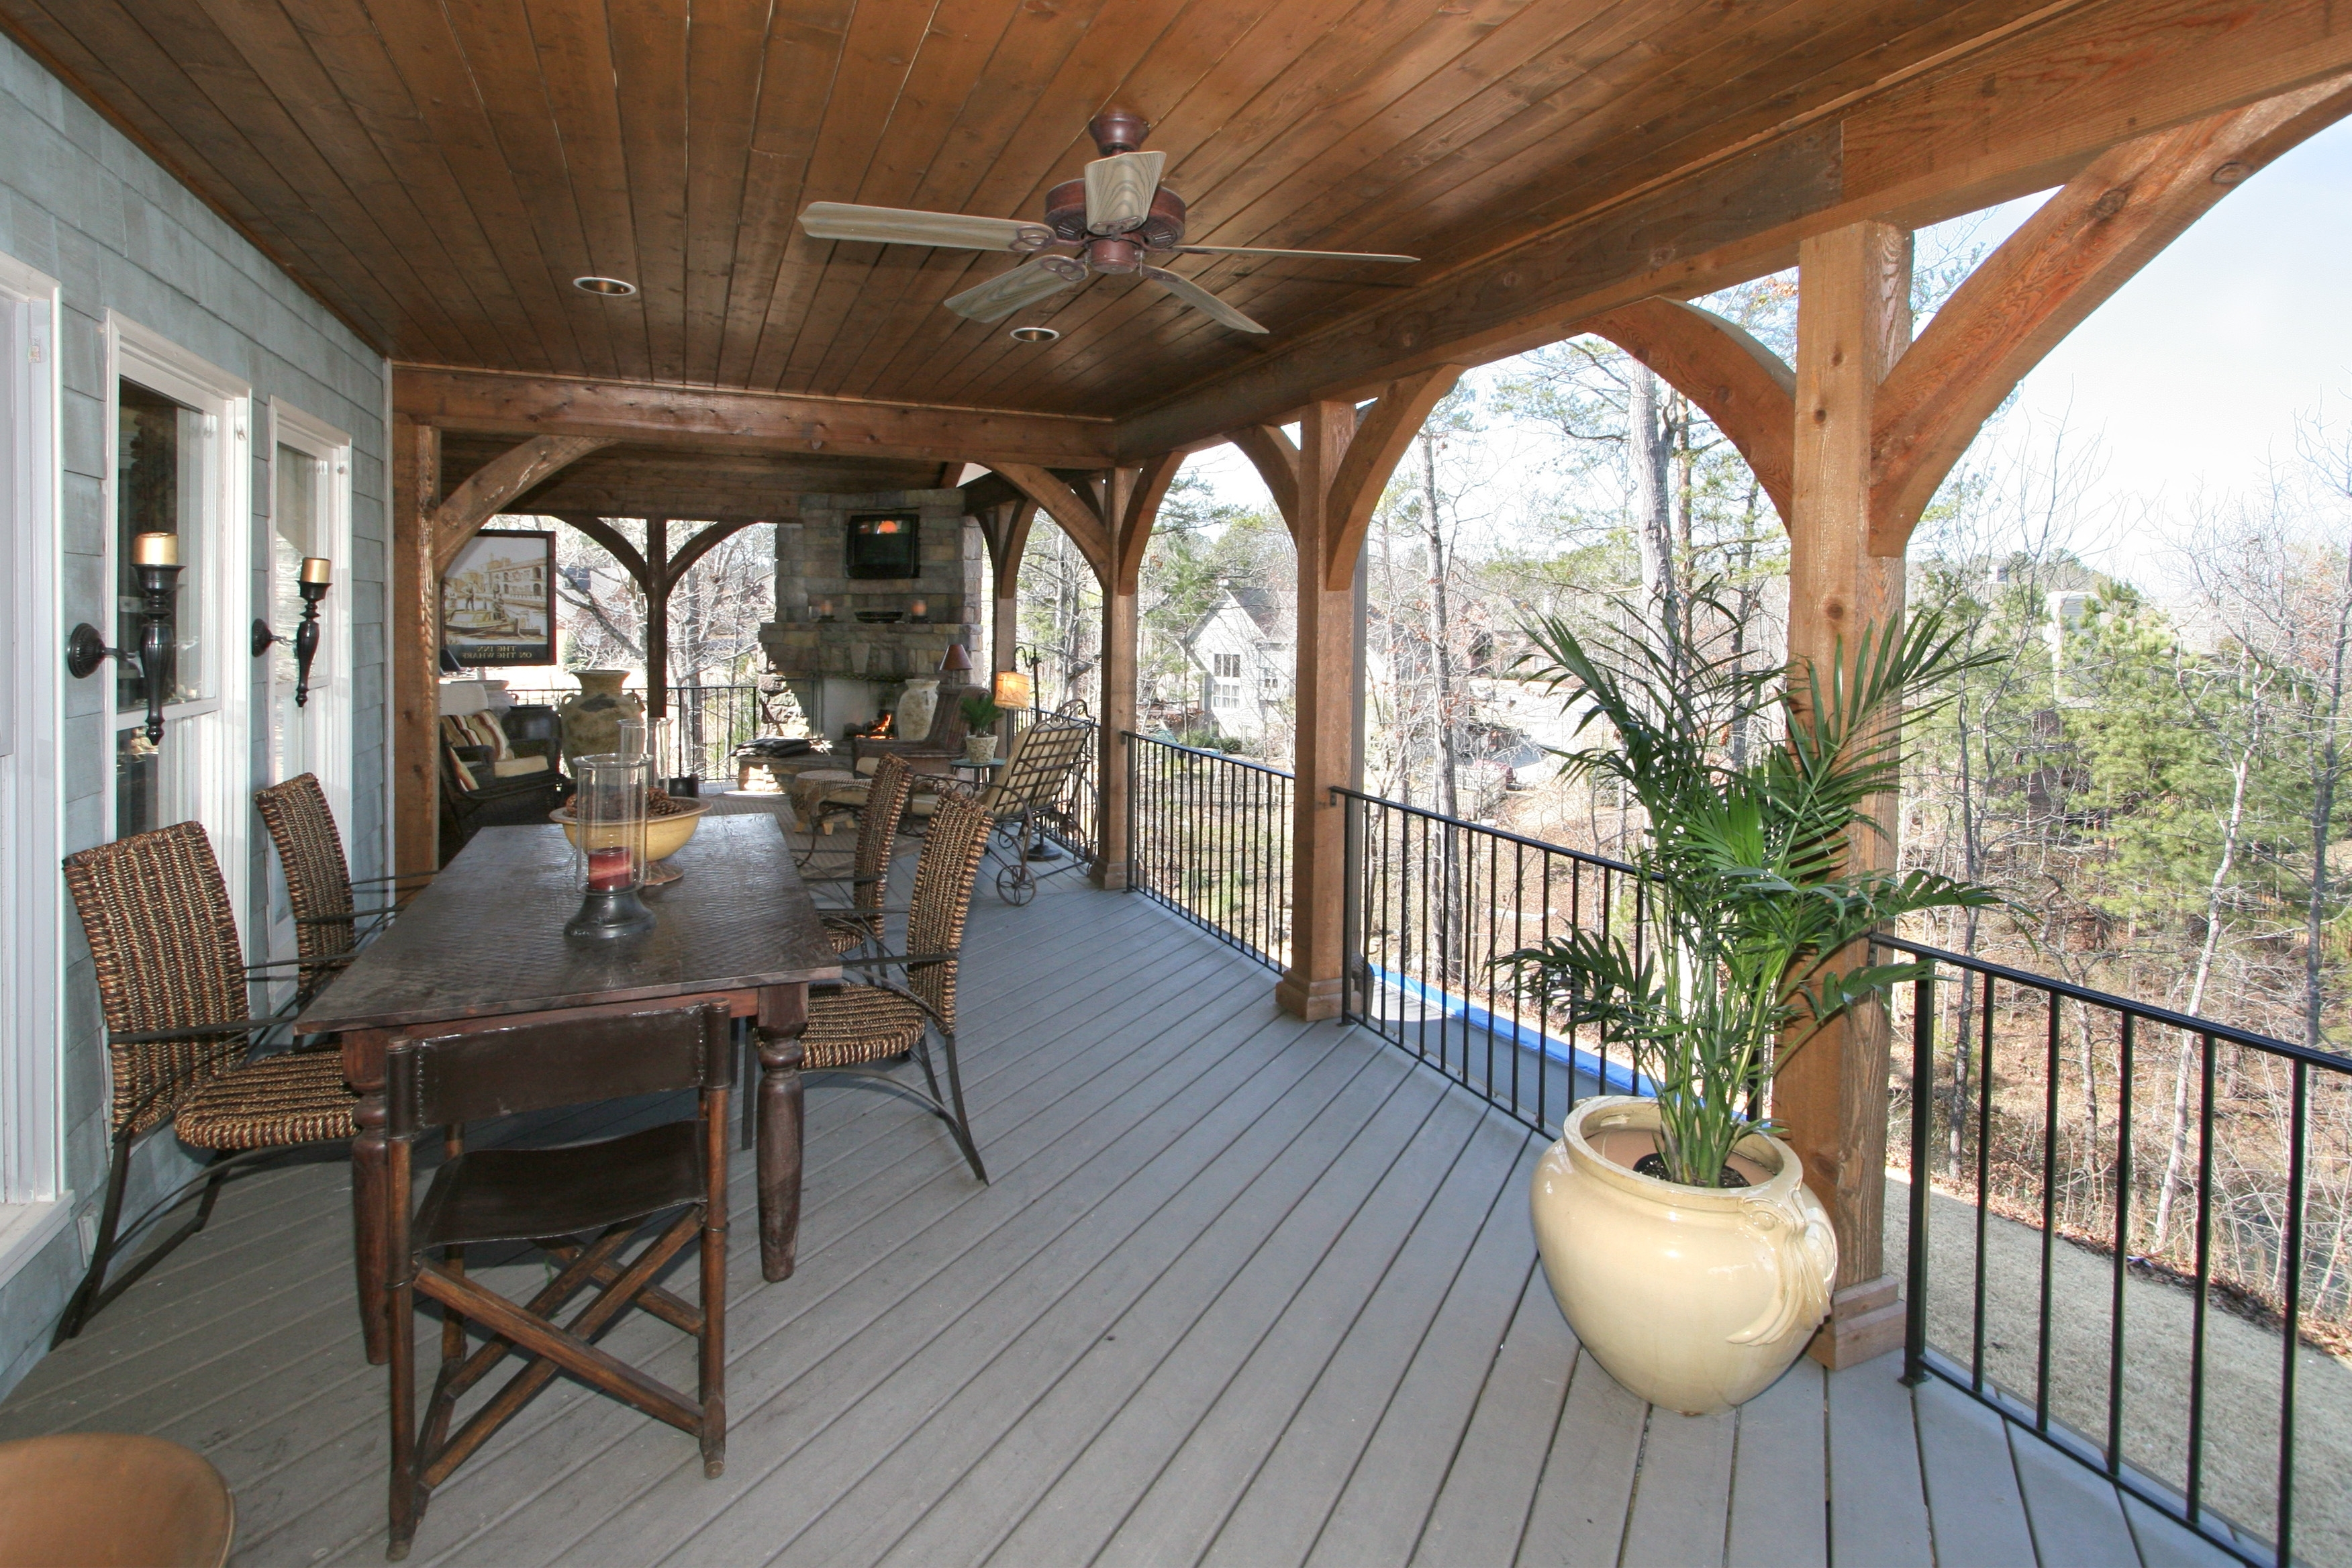 Outdoor Ceiling Fans For Decks Throughout Most Up To Date Outdoor Living St (View 11 of 20)